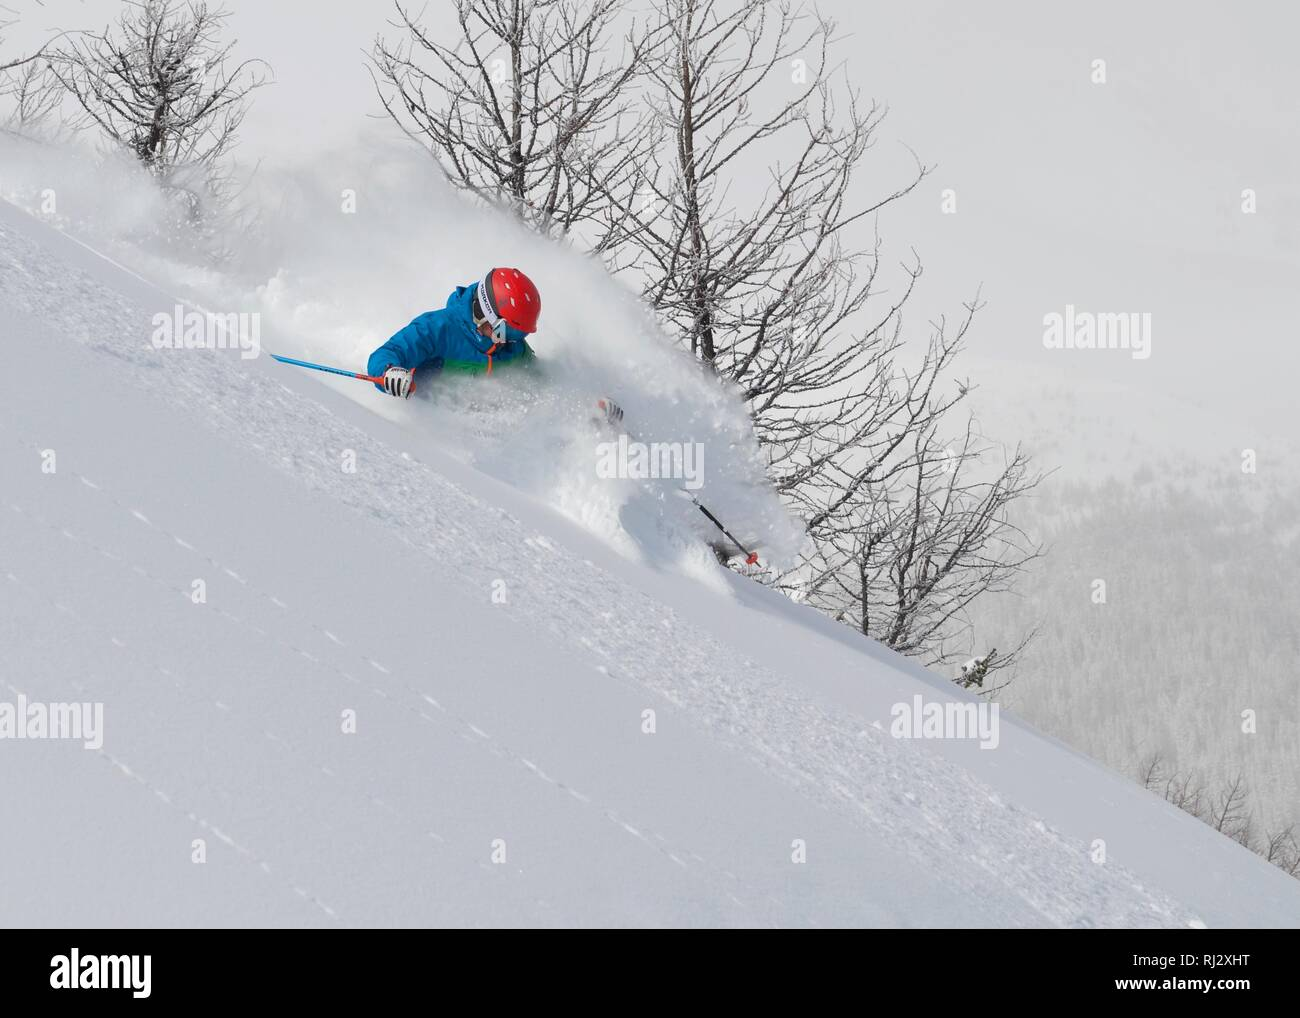 Spring powder snow in the Canadian Rockies - Stock Image